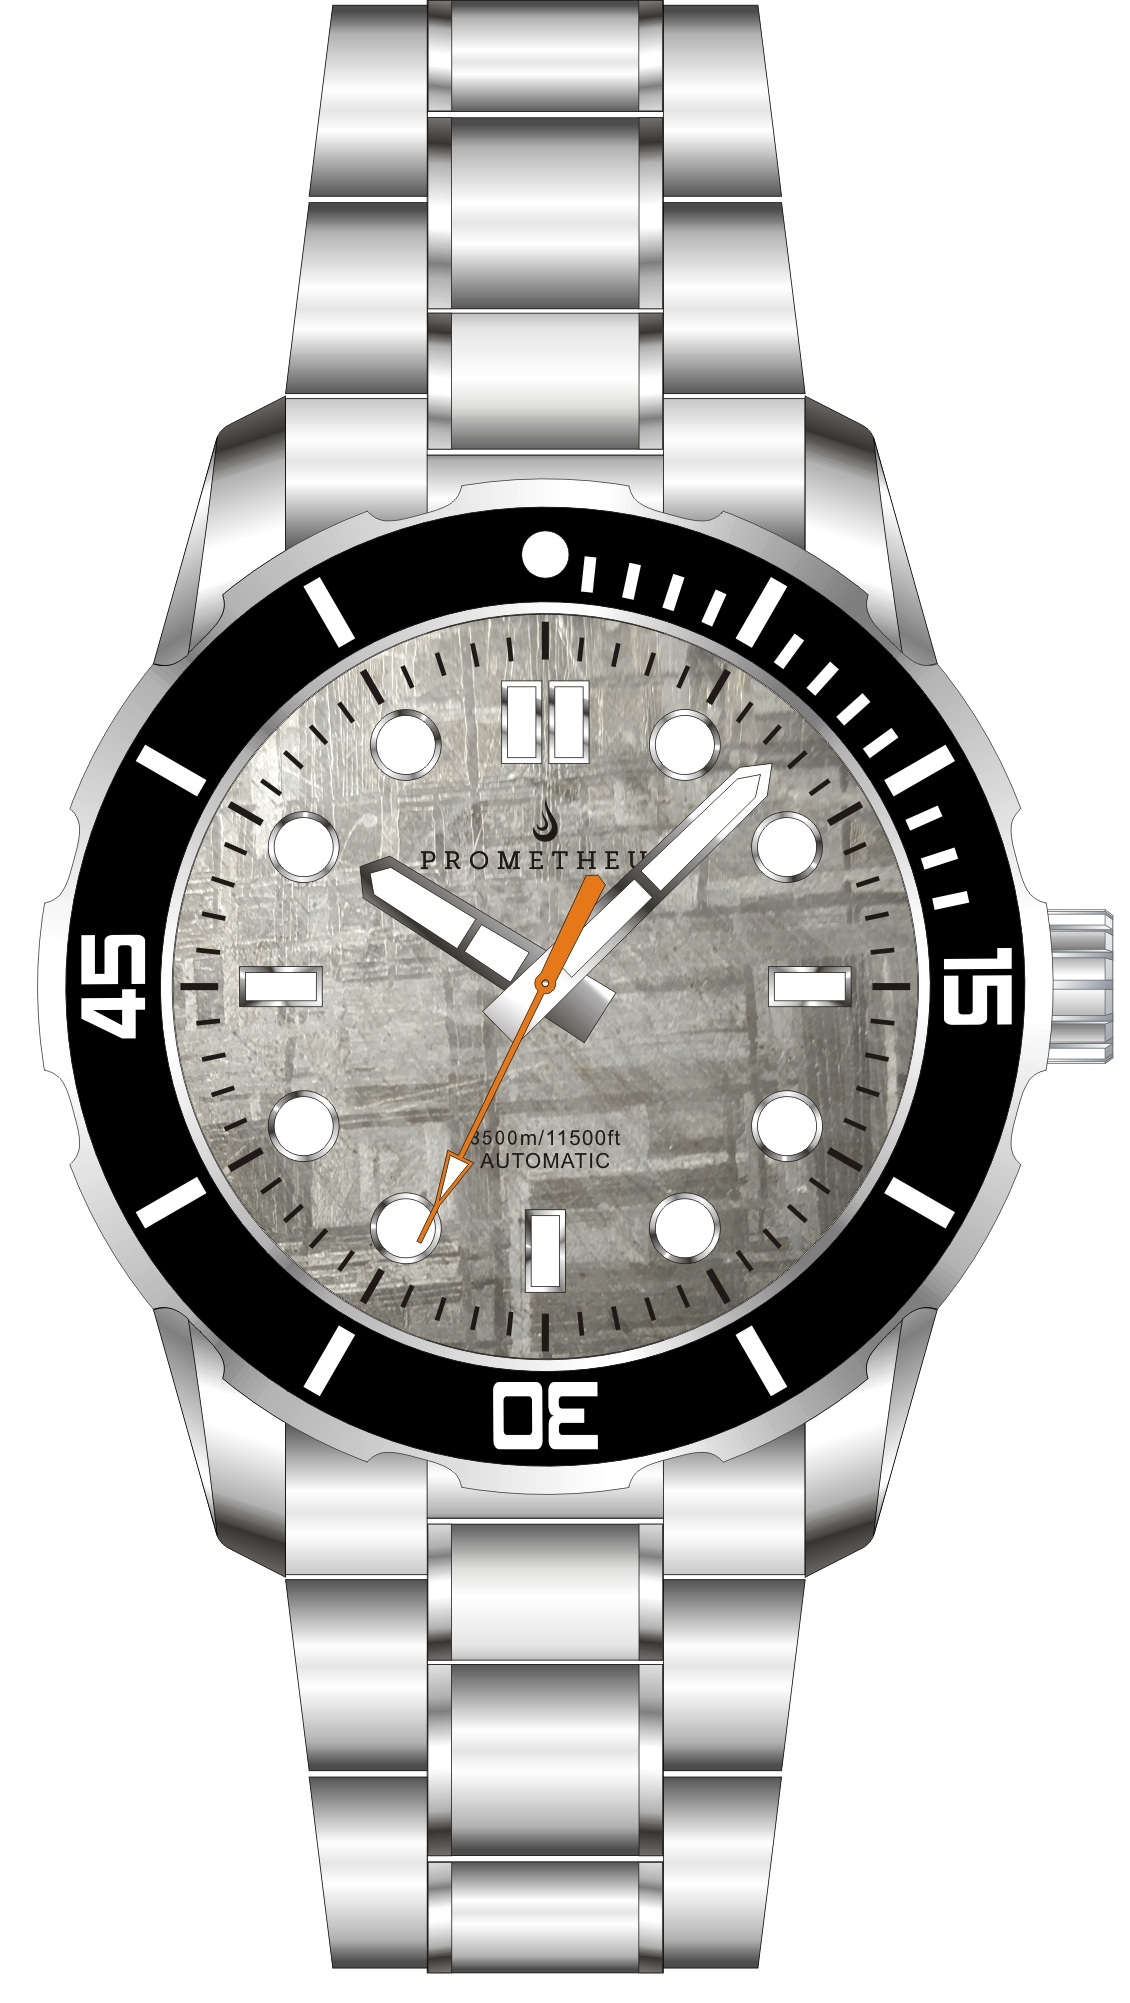 Prometheus Poseidon Meteorite Dial Pencil Hands Orange Seconds No Date 3500m Diver Watch Automatic Miyota 9015 PMTPMETEORPHONDT